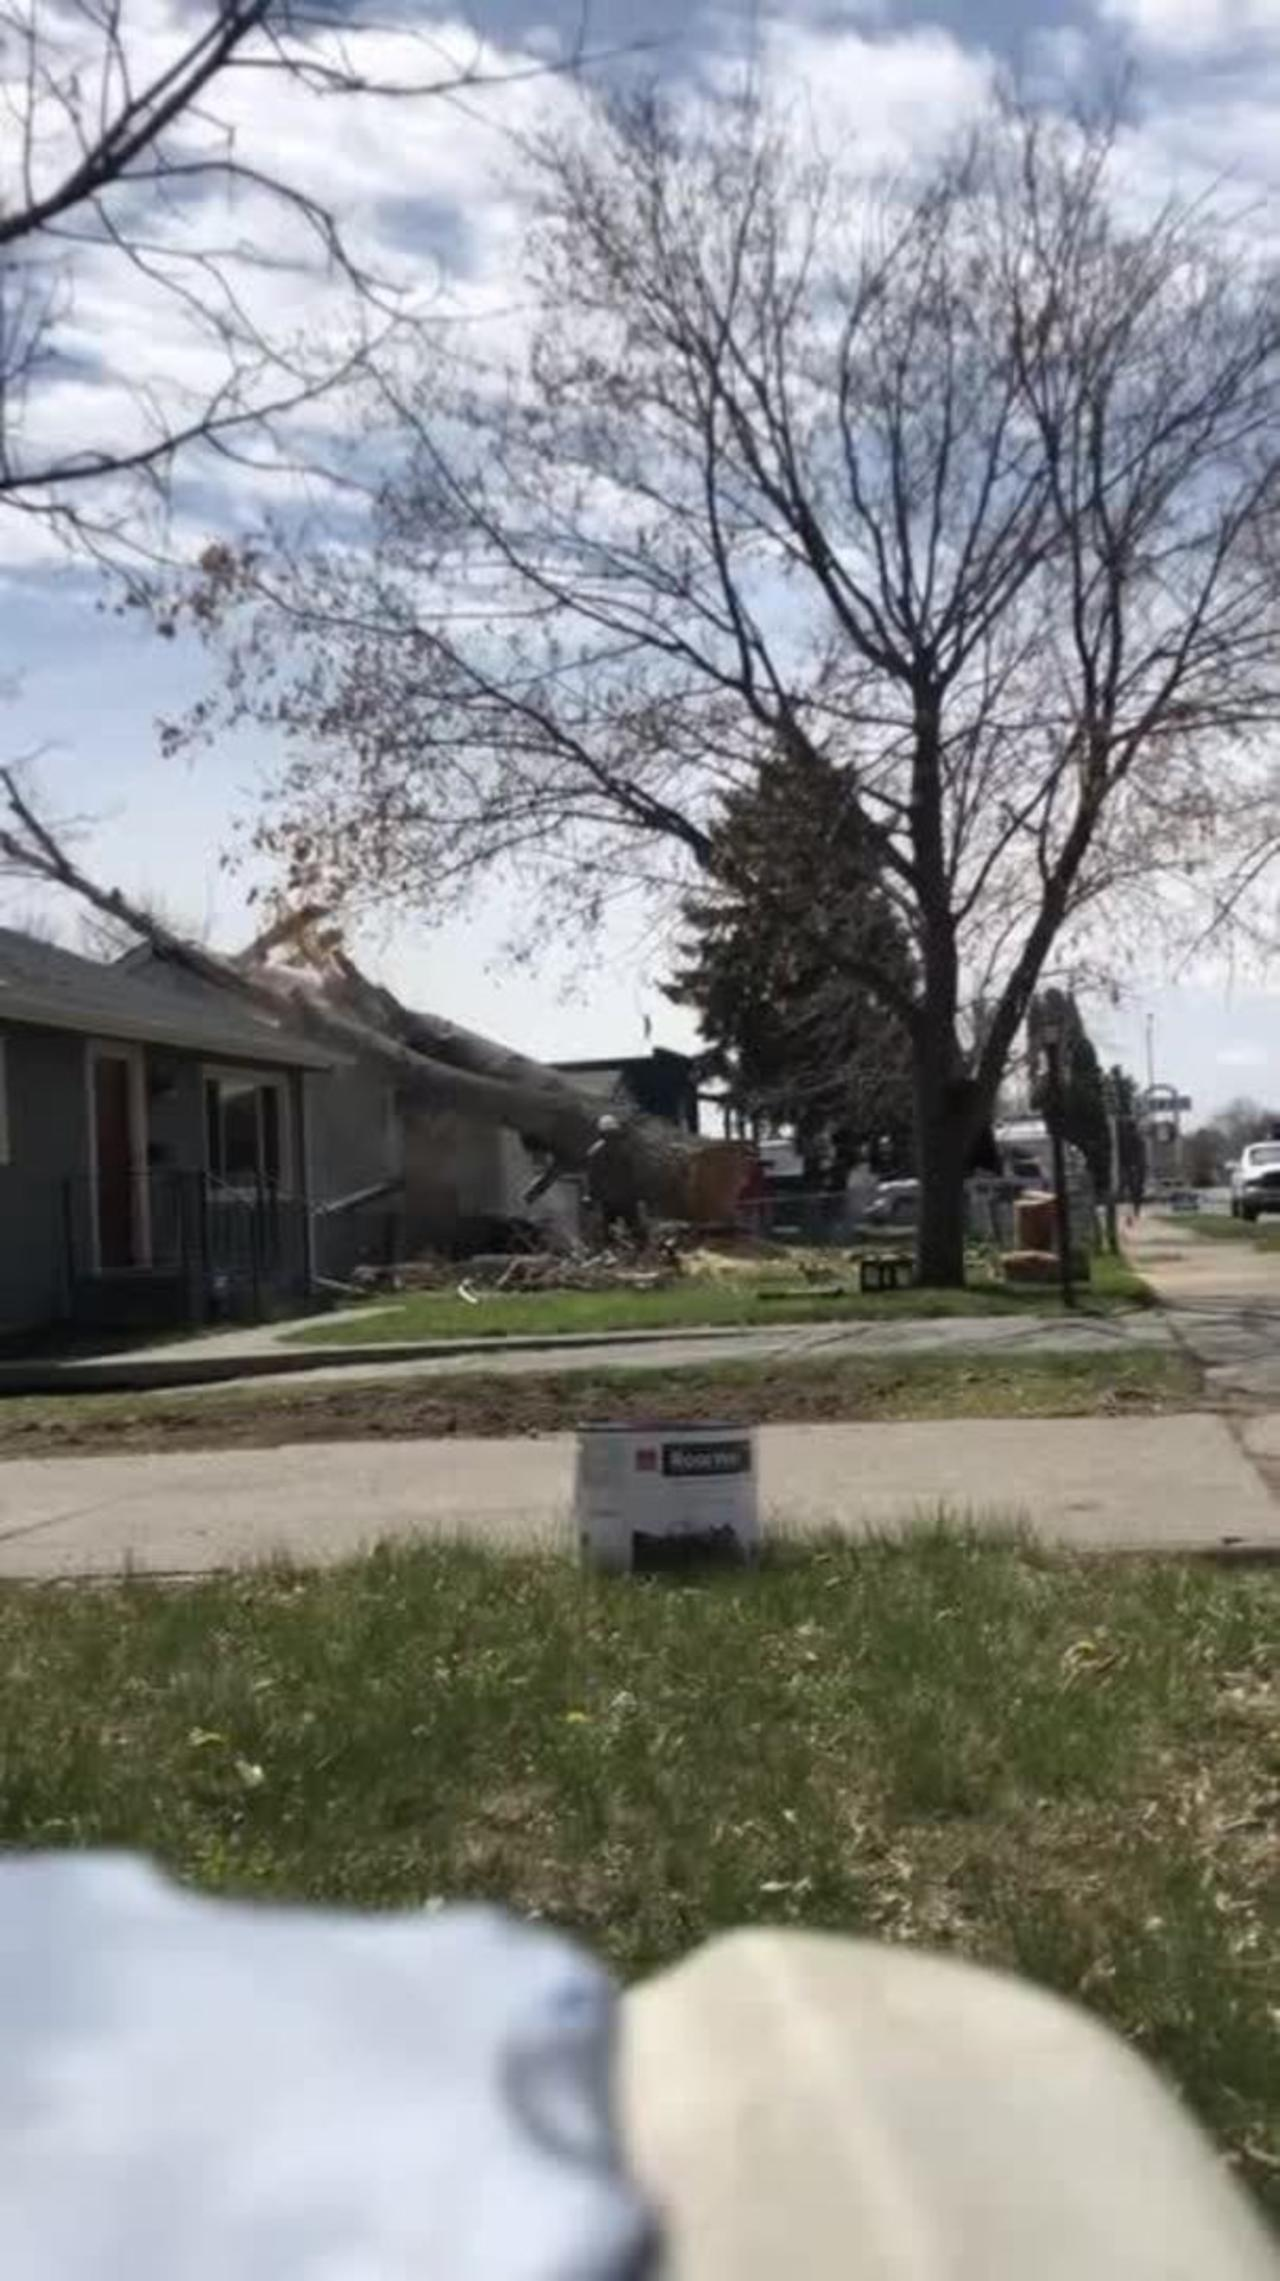 Guy Cuts Tree Which Accidentally Falls Down on the Roof of House